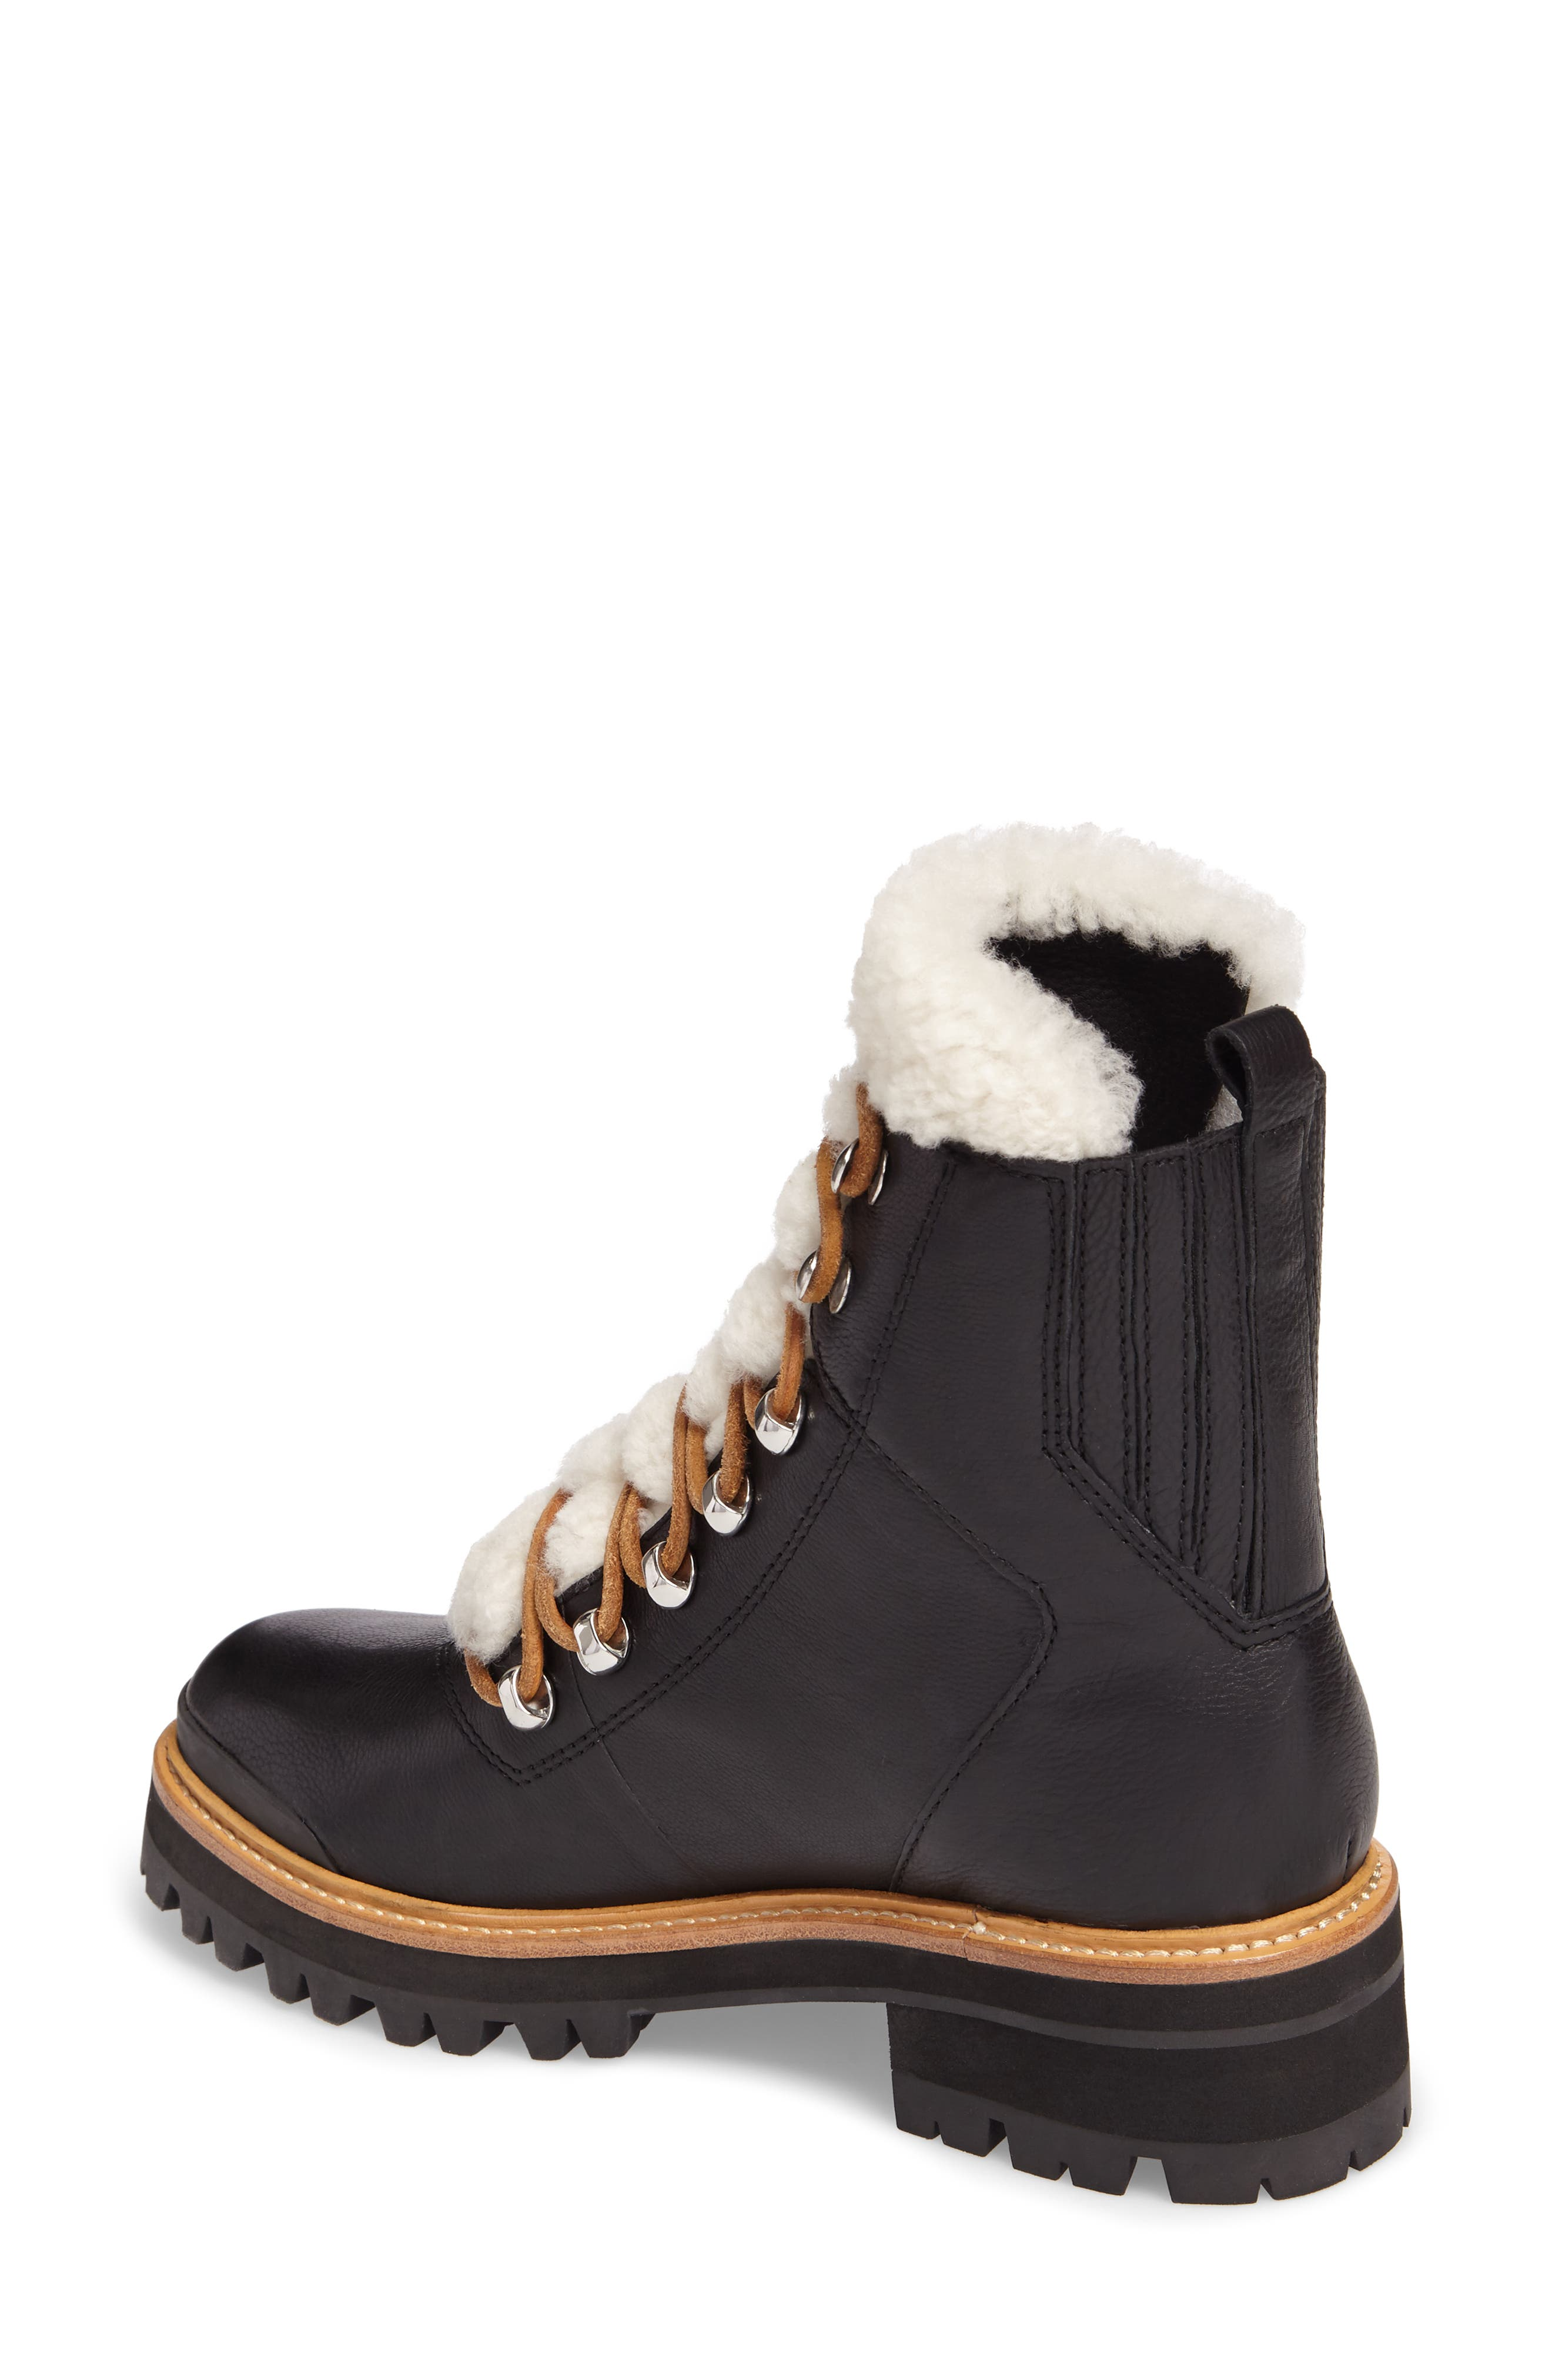 927f5bca2c4 marc fisher boots